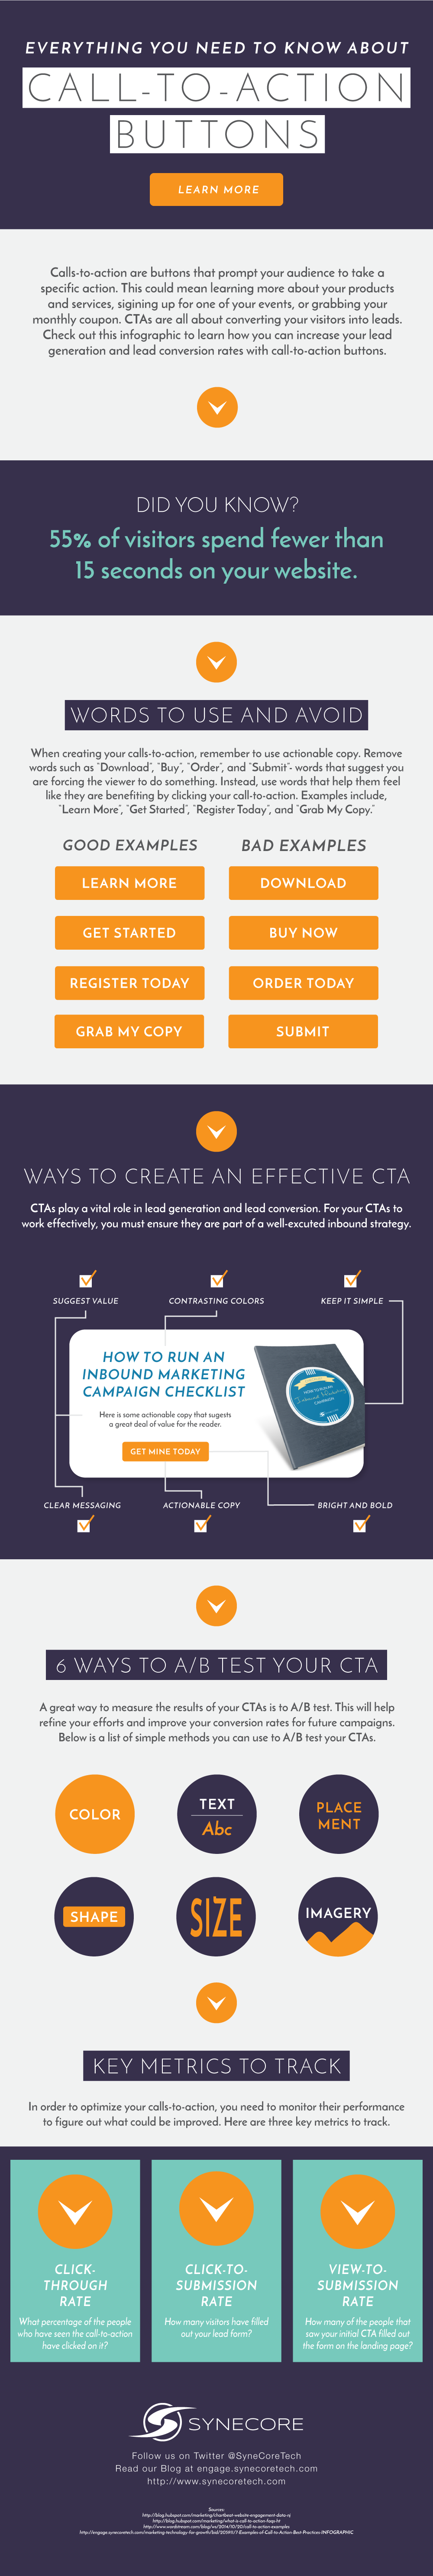 Everything You Need to Know About Call-to-Action Buttons [INFOGRAPHIC]